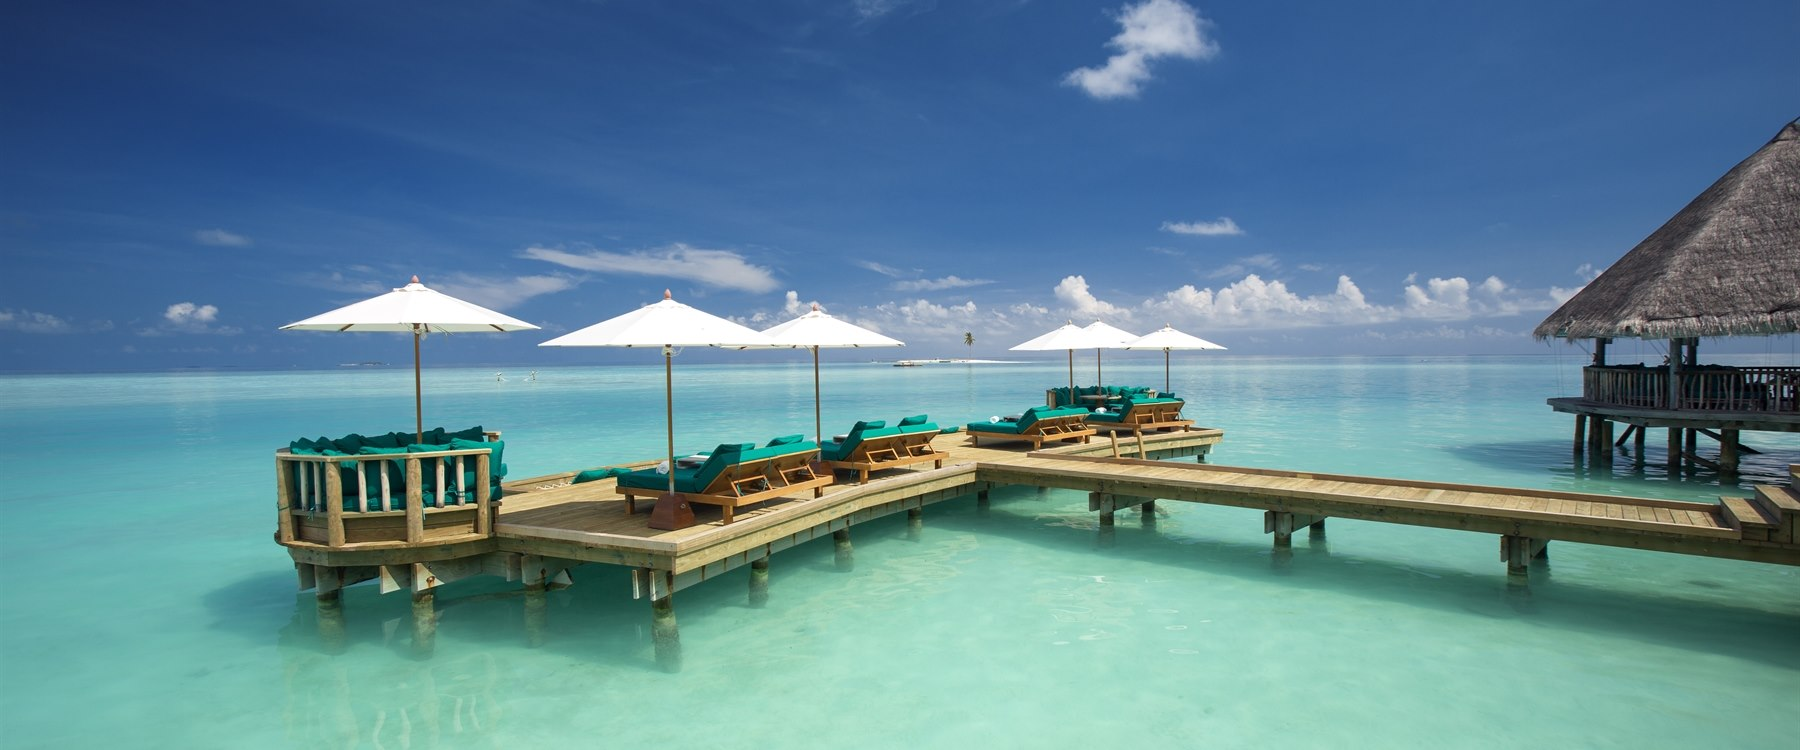 Over water bar extended deck at Gili Lankanfushi, Maldives